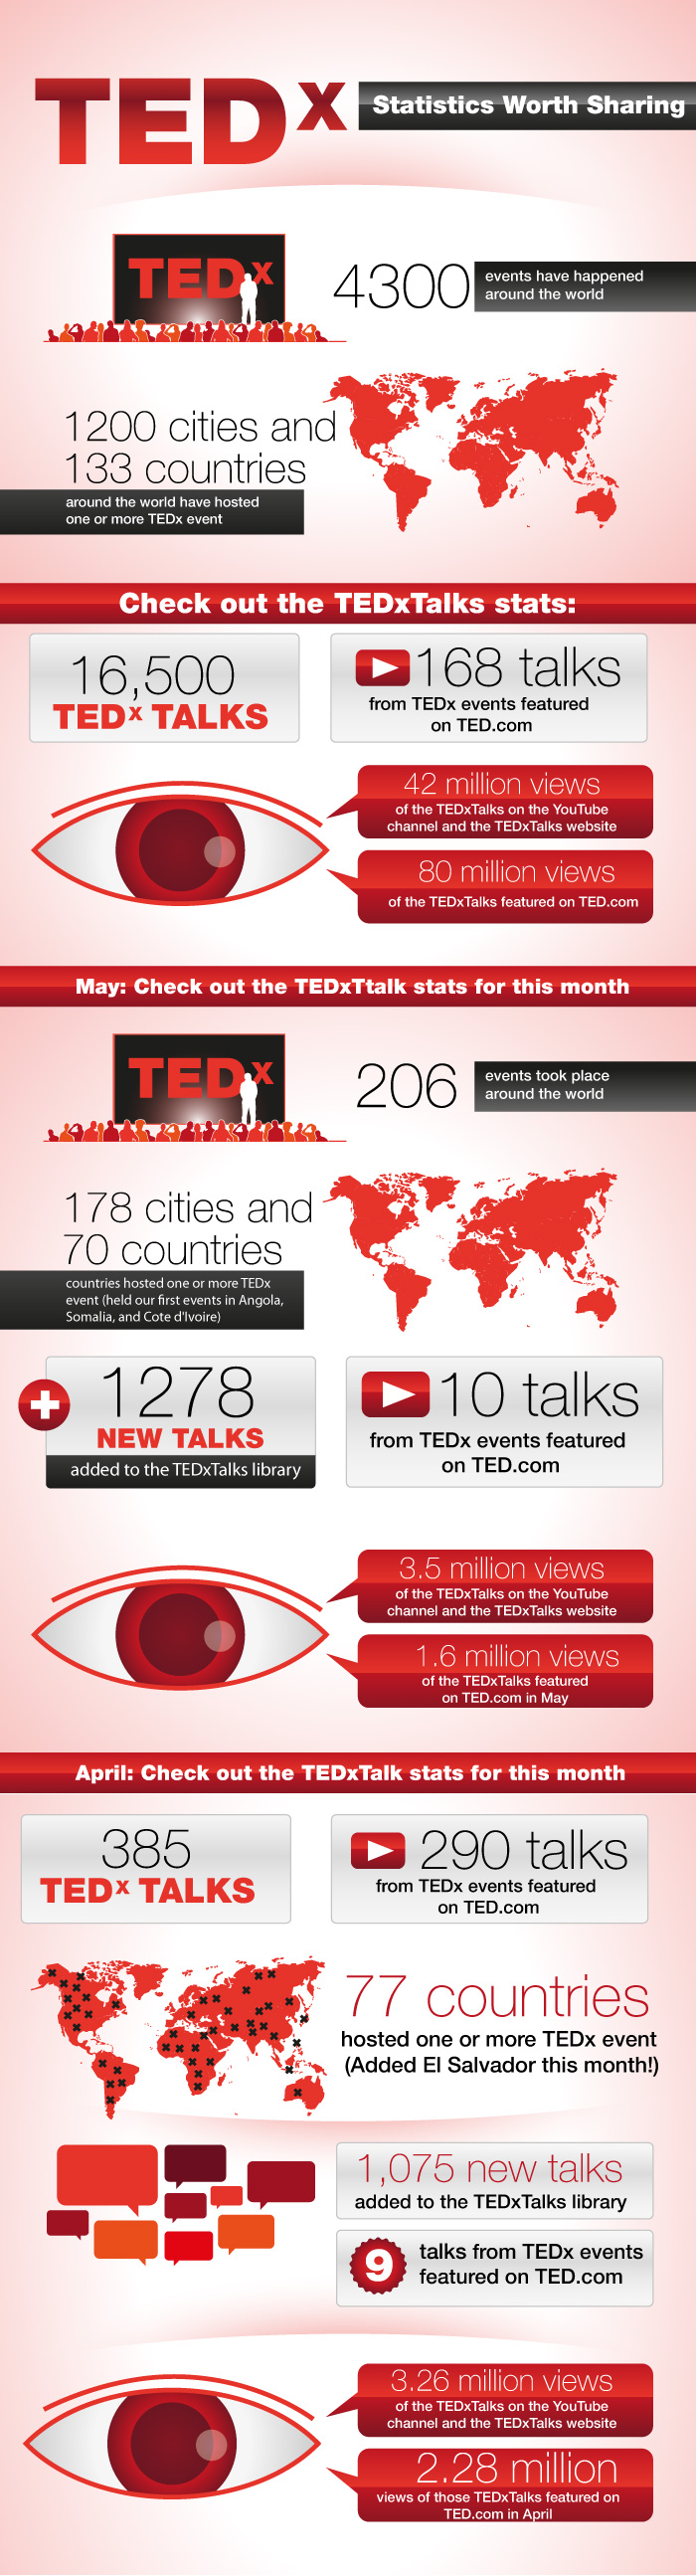 TED and TEDx: Statistics Worth Sharing